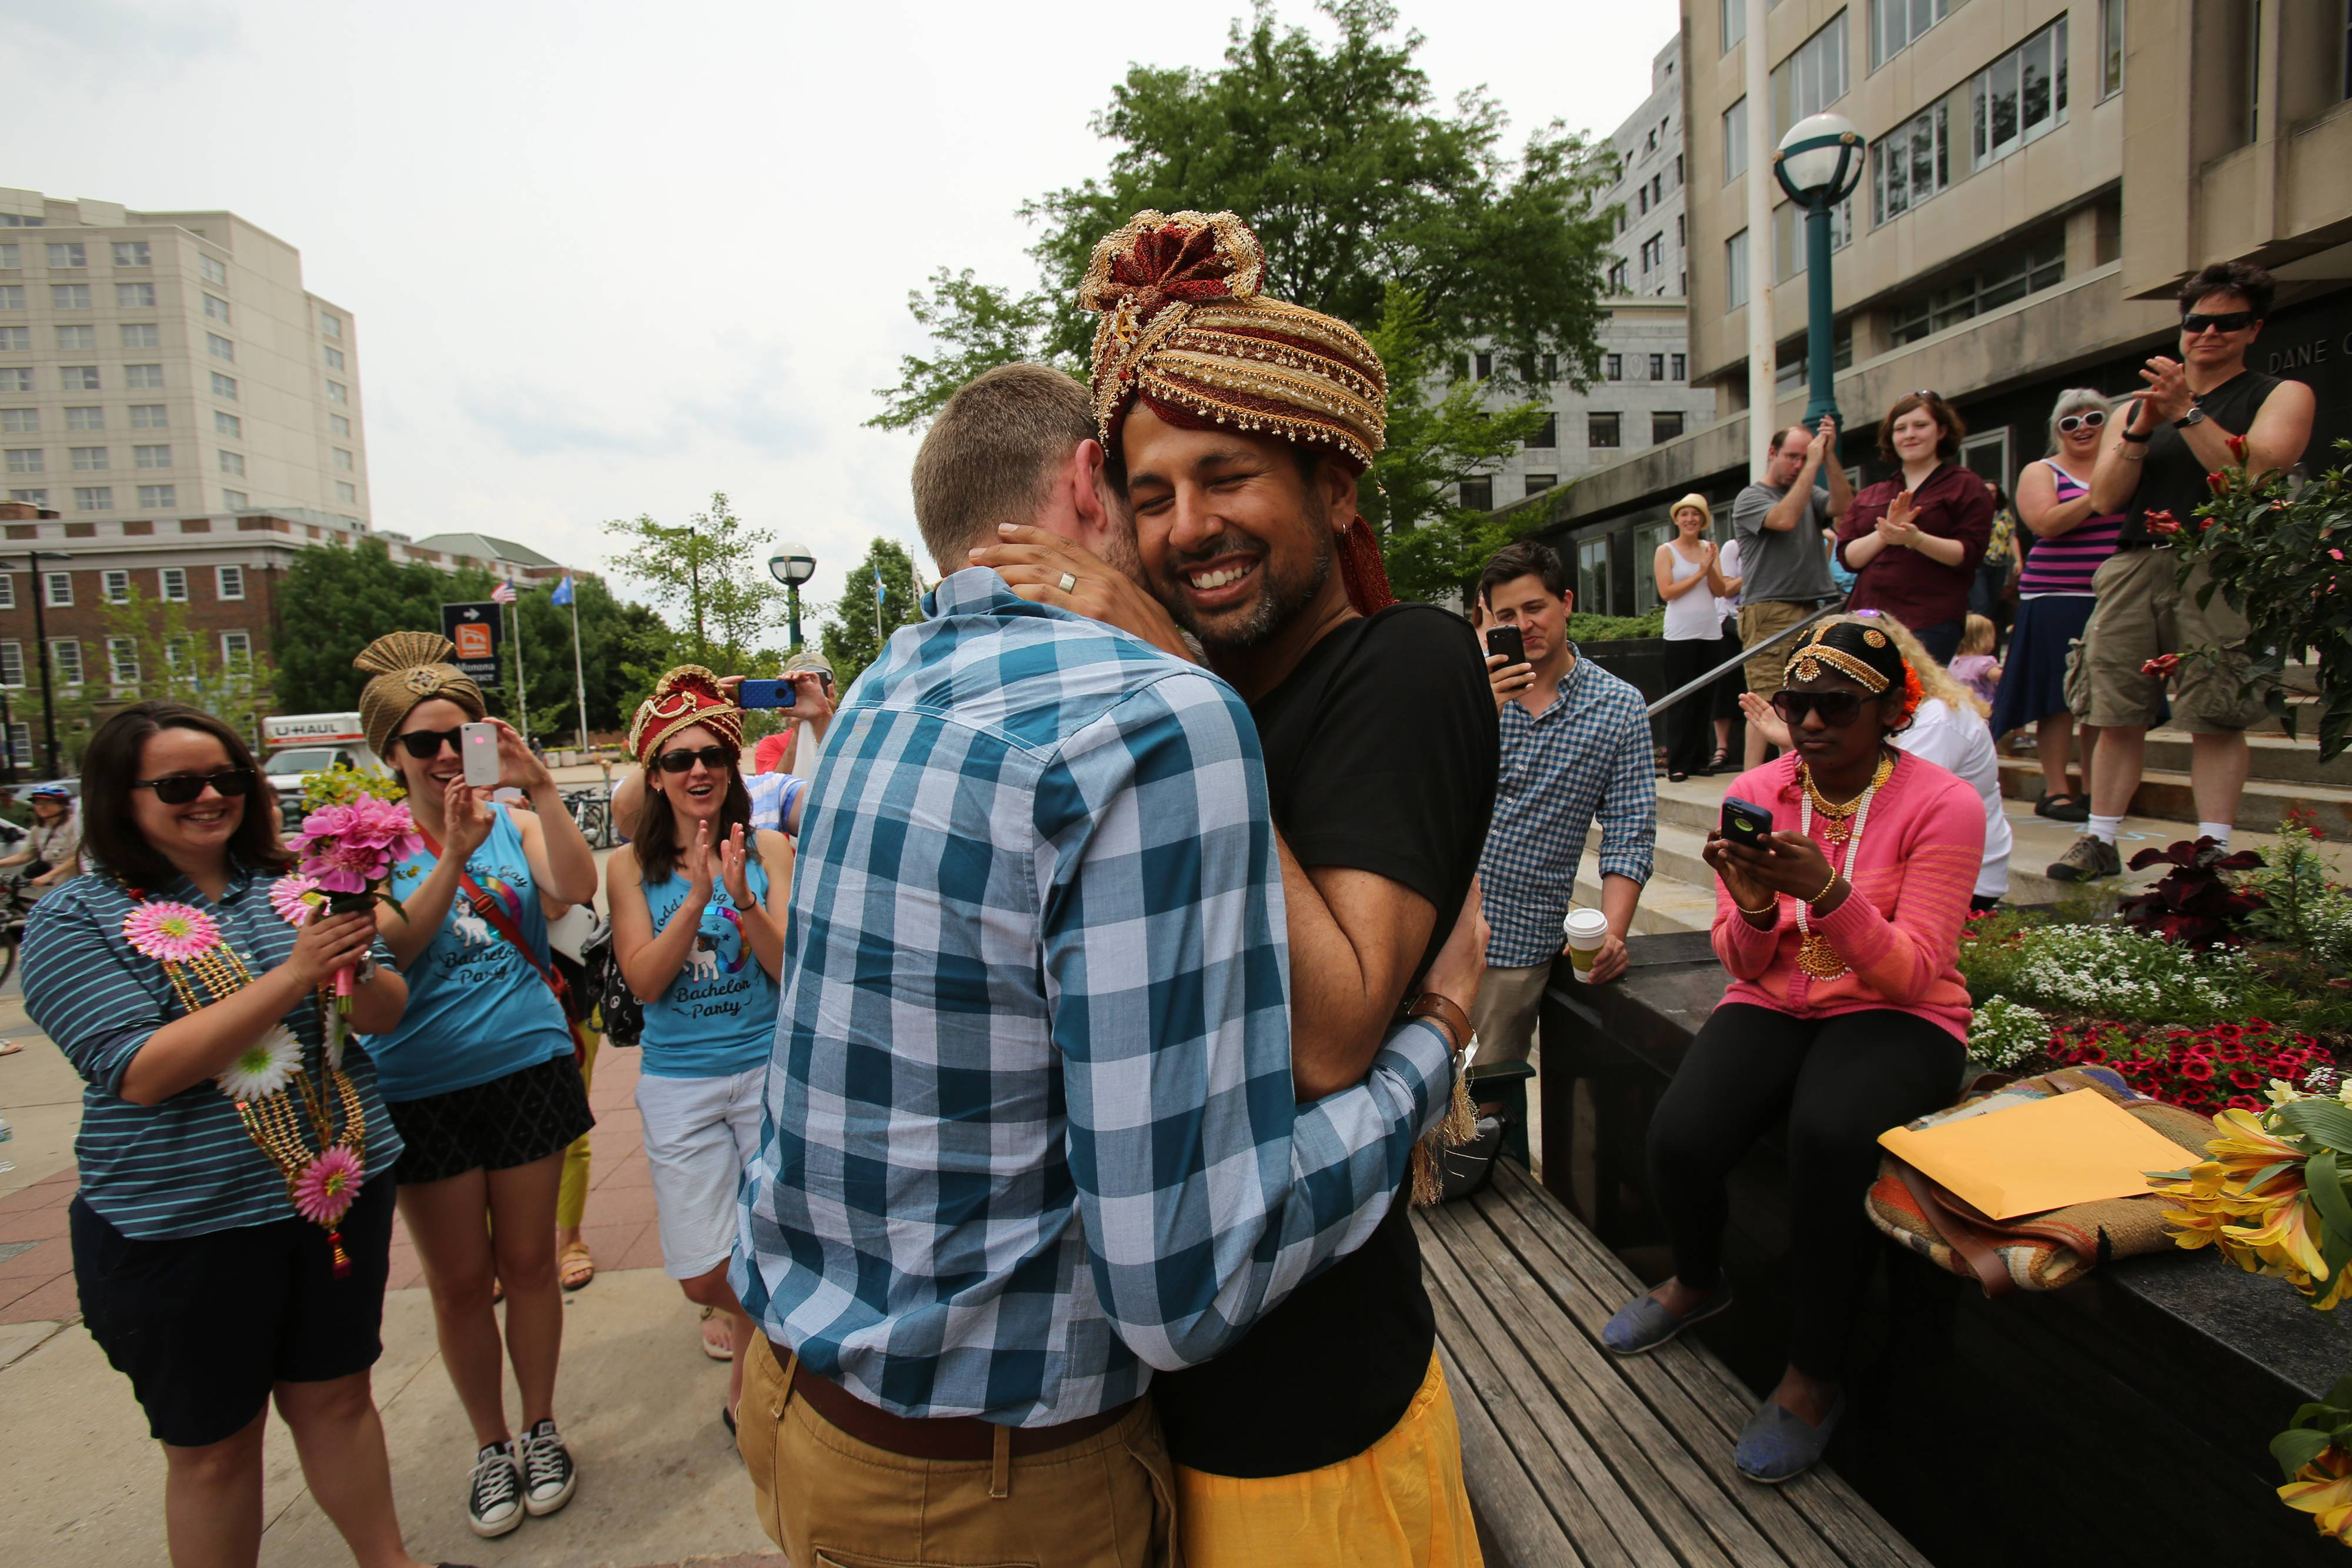 Todd Kinsman, 28, left, and Ravi Manghnani, 37, hug after getting married outside the Madison City-County Building on Saturday, the day after the ban on same-sex marriage was struck down in Wisconsin.